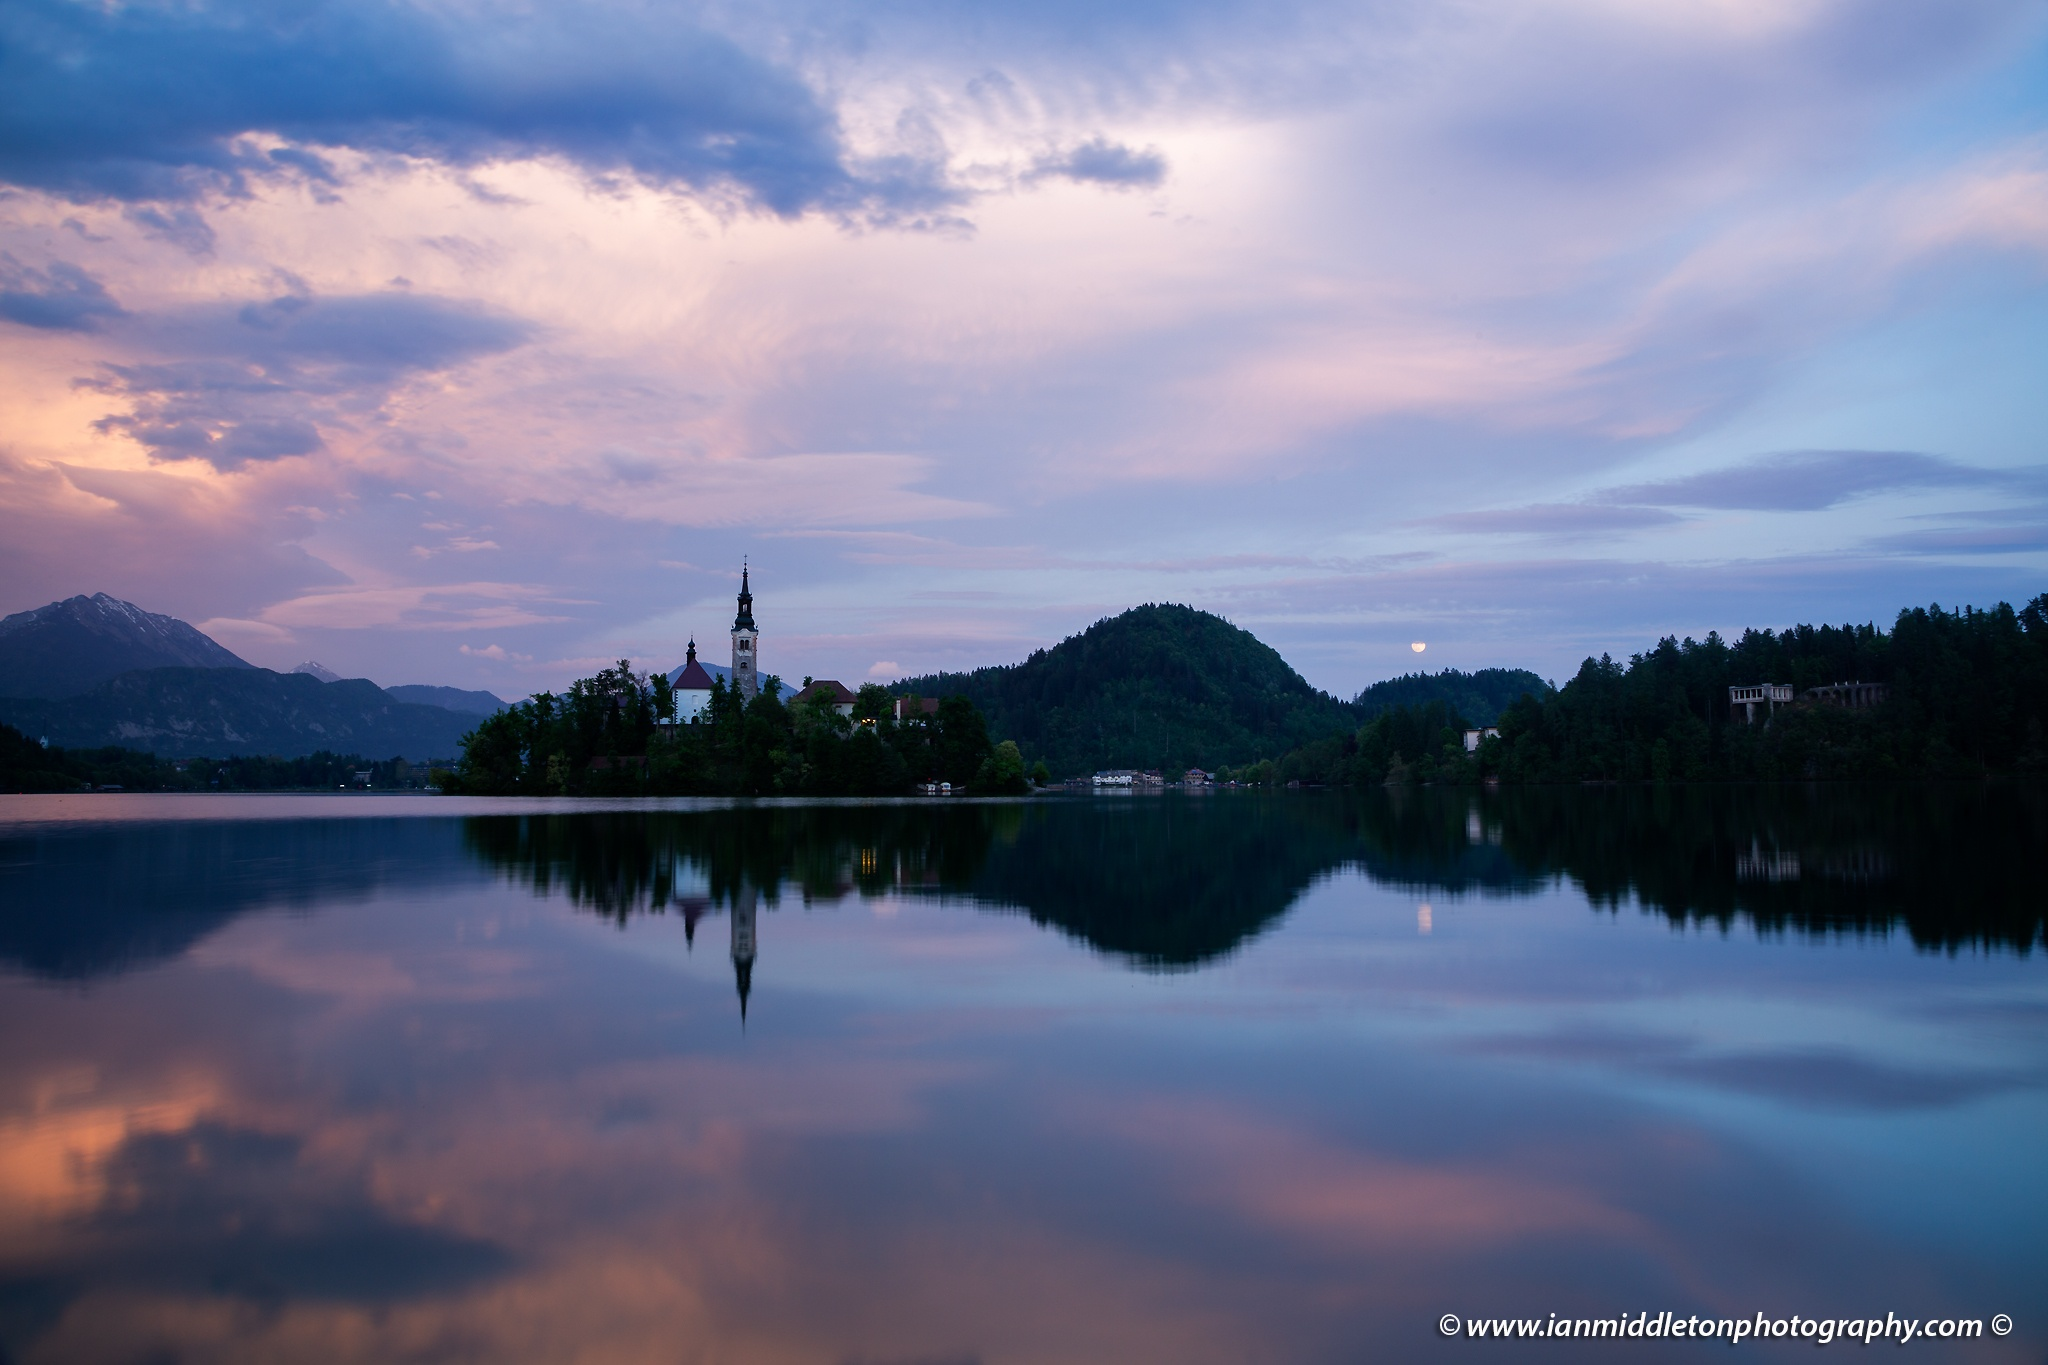 Lake Bled at sunset with the moon rising above the nearby hills, Slovenia .